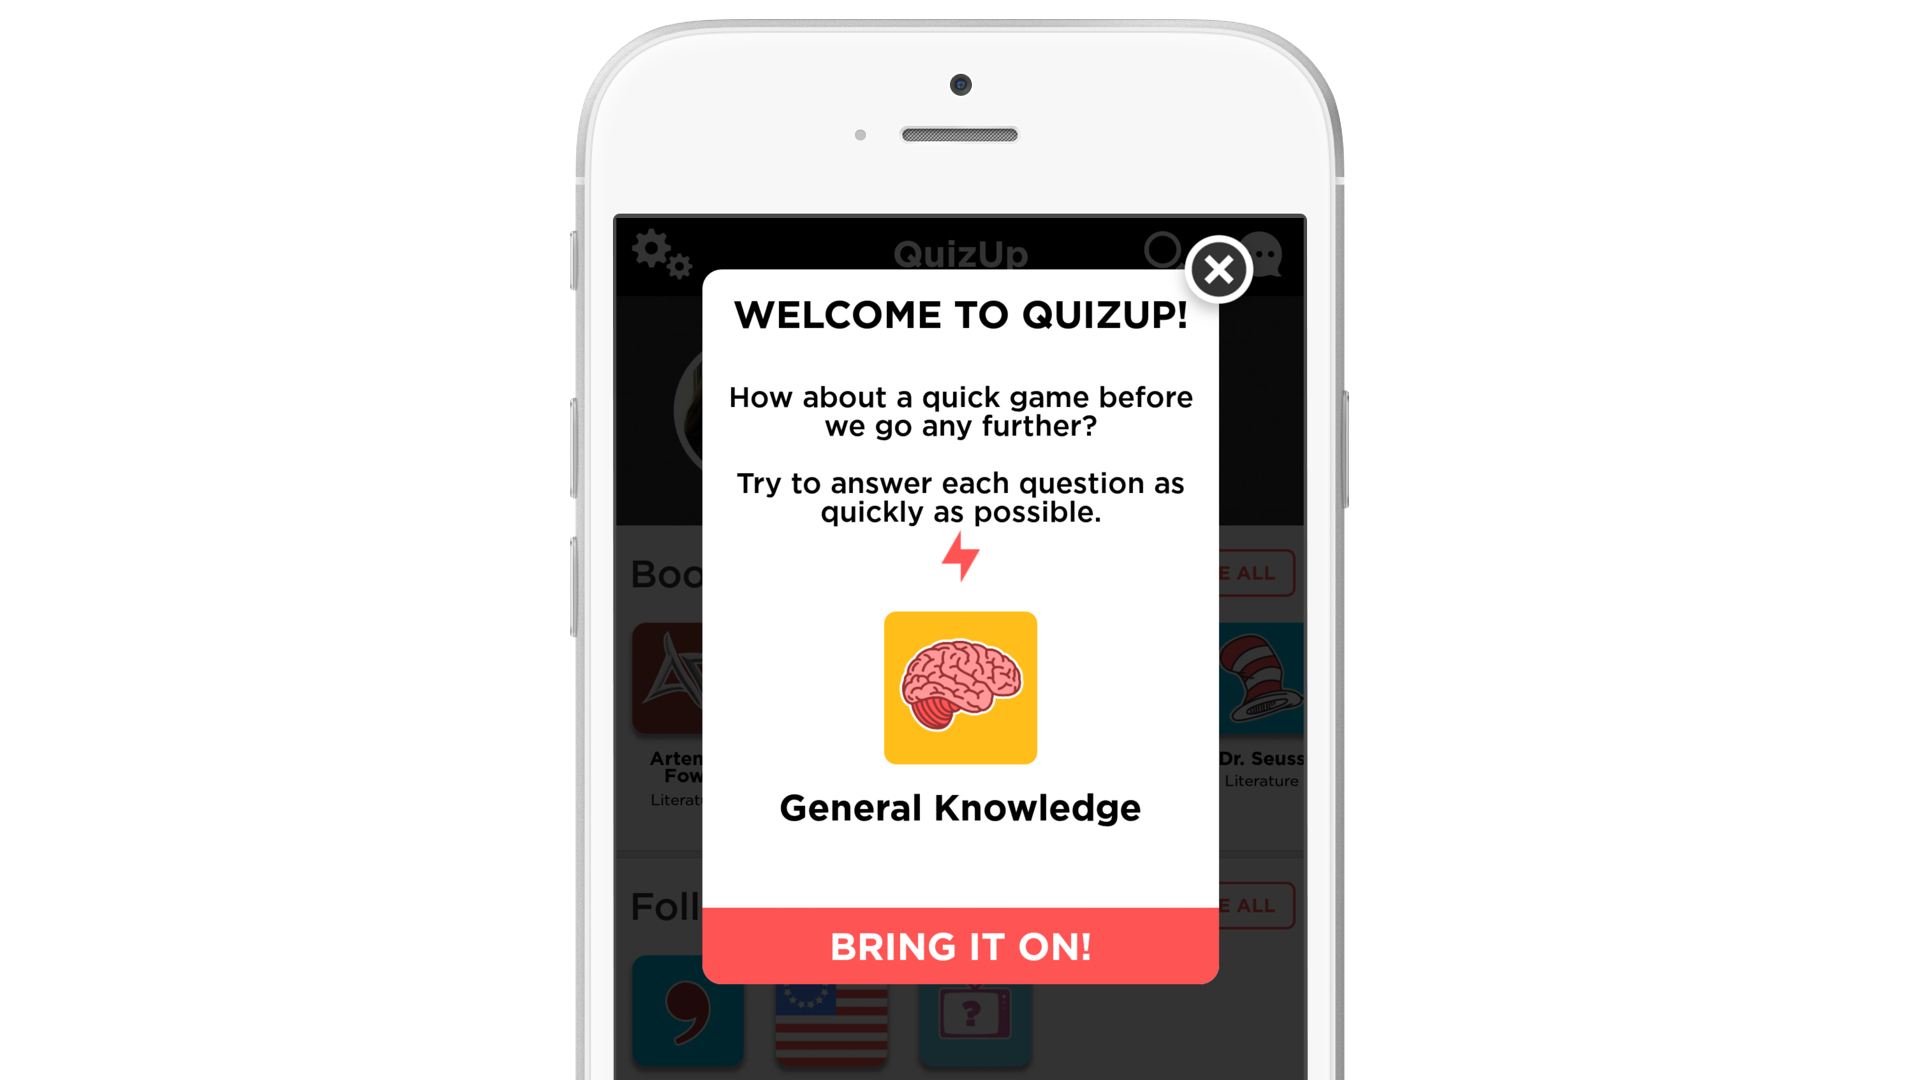 Quizup welcome message